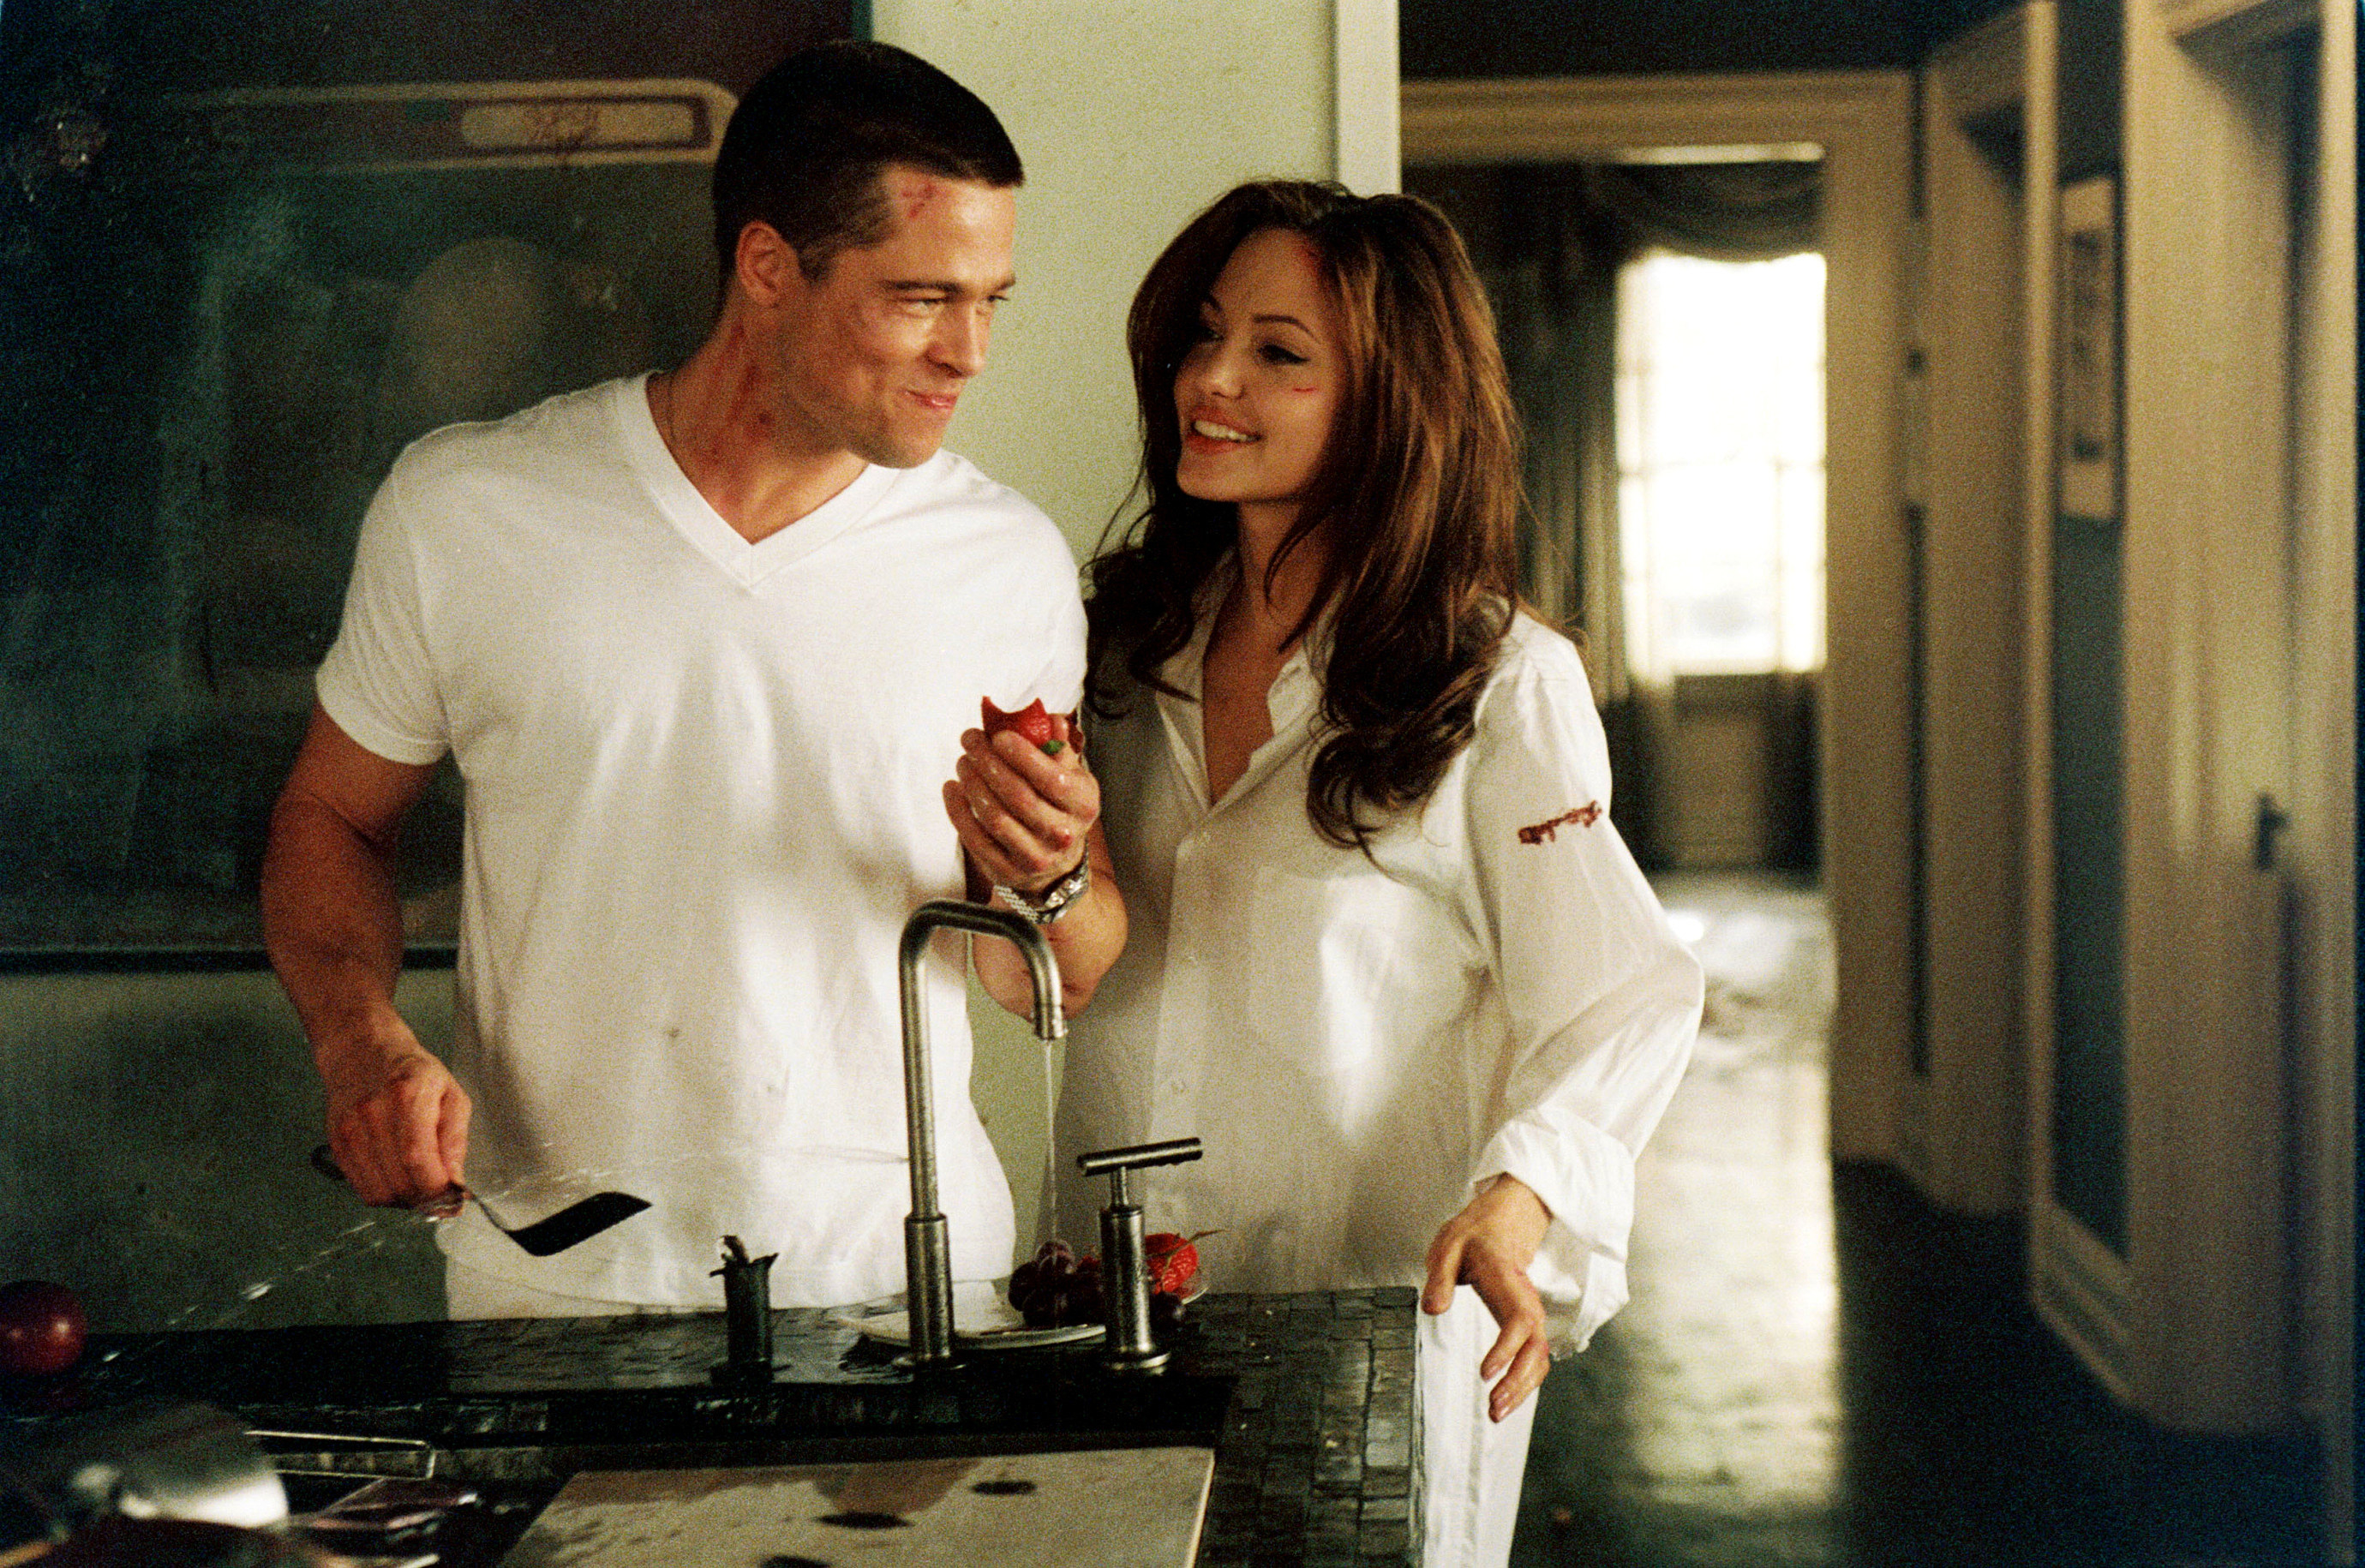 Angelina jolie wearing brad pit's shirt as pajamas in mr and mrs. smith